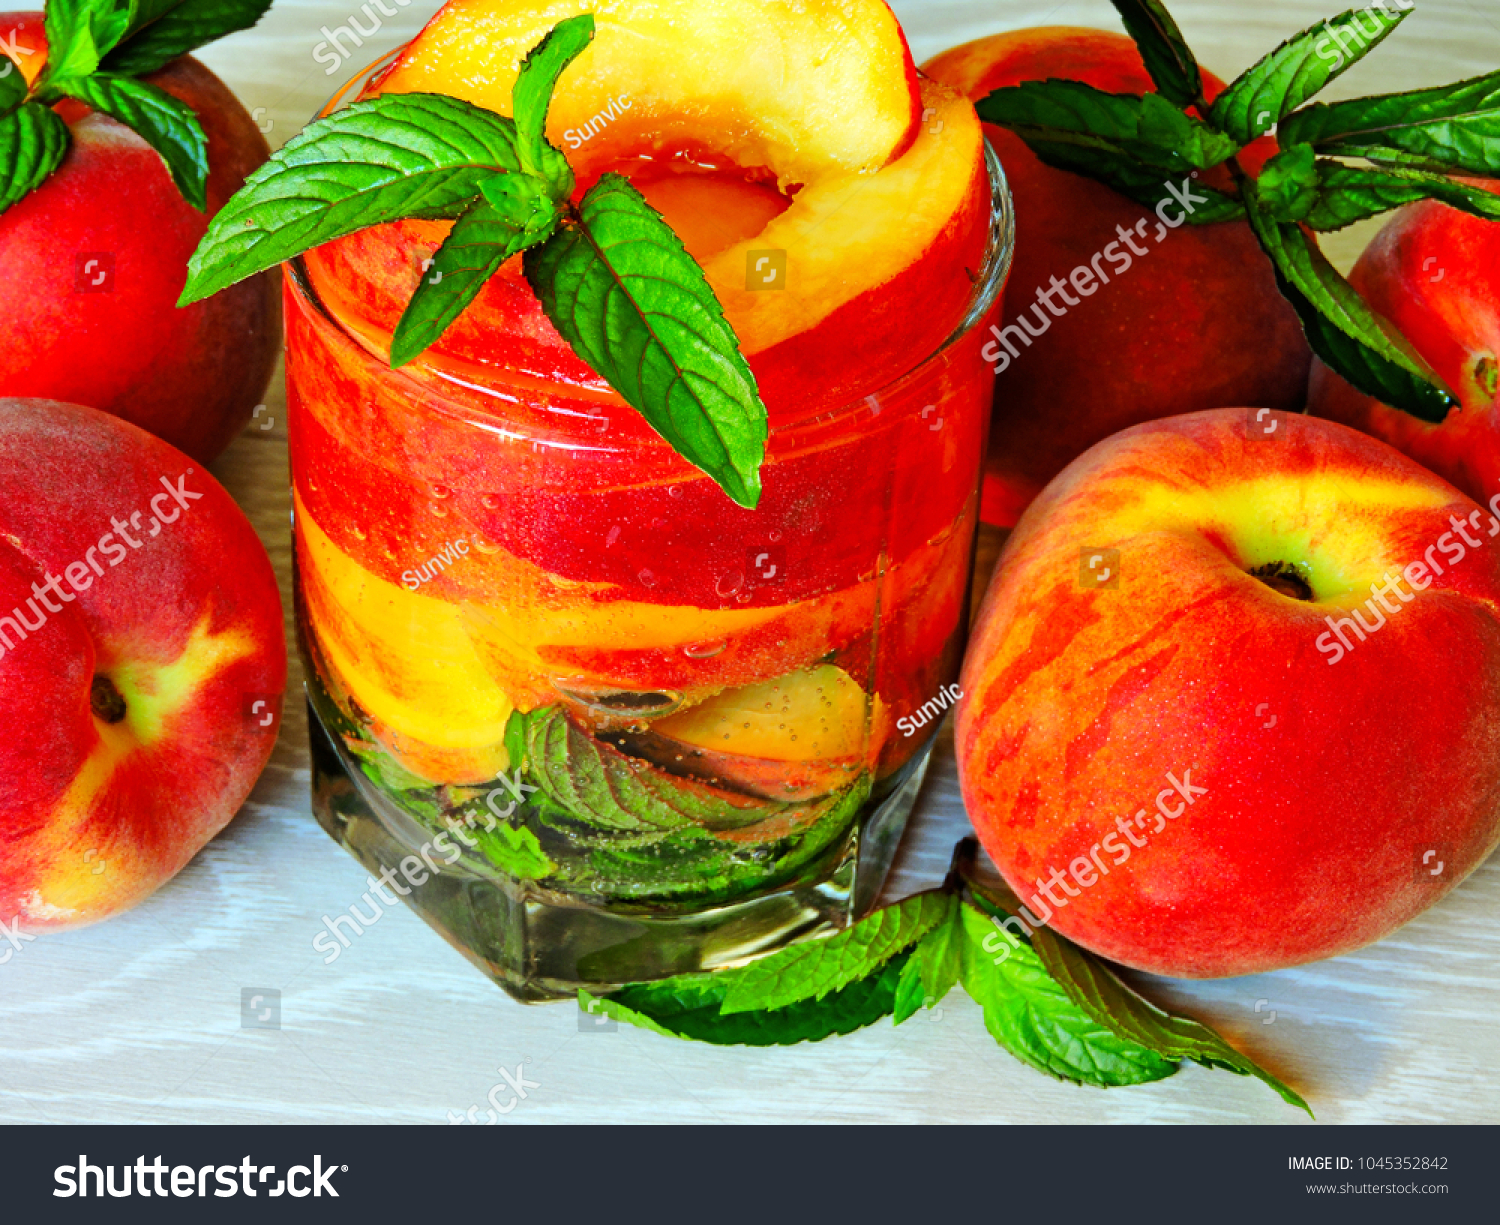 Watch Mint Infused Water with Peaches That Cools You Off video